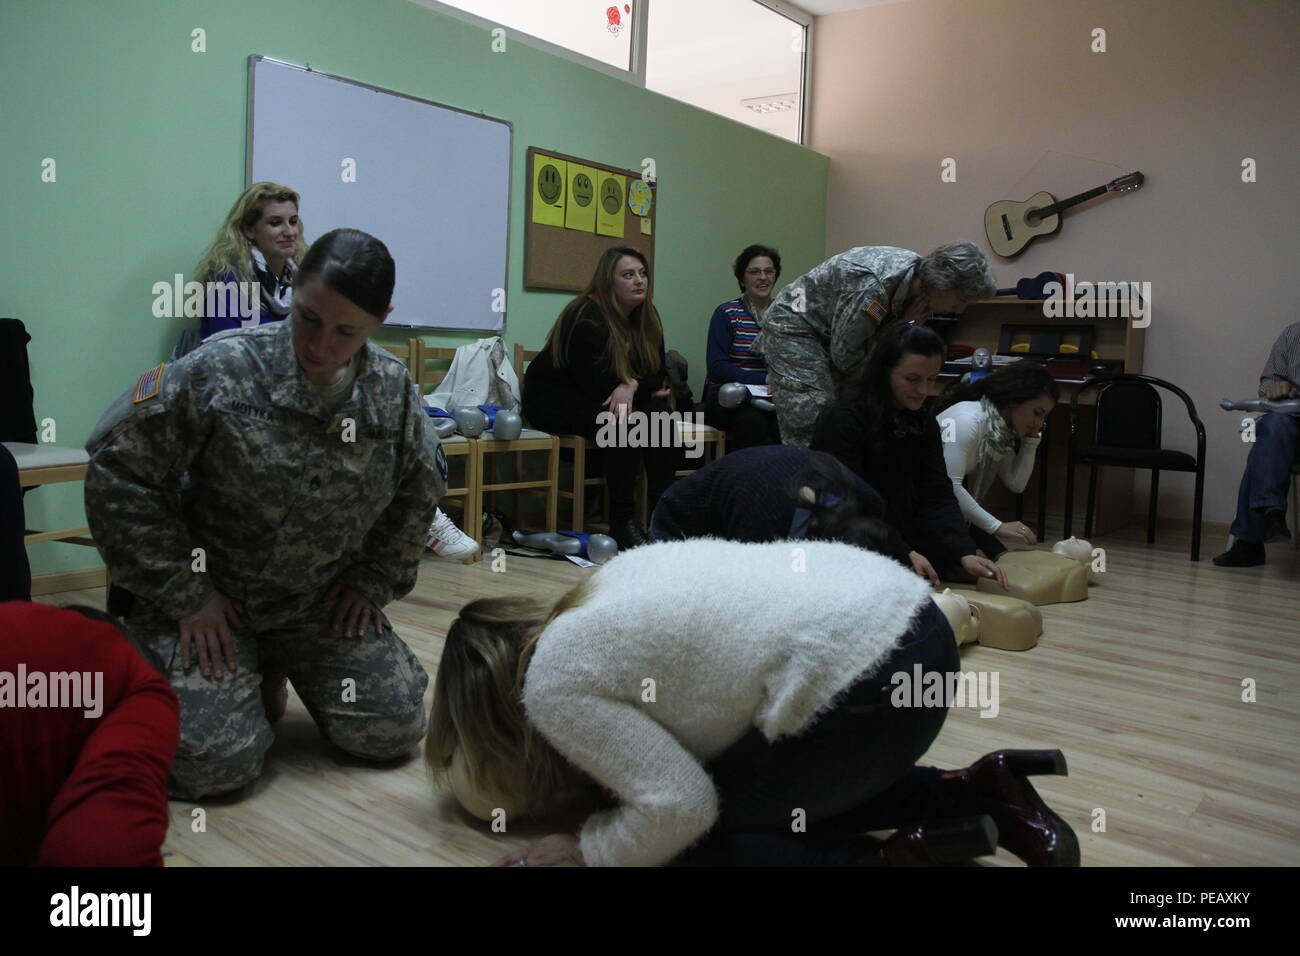 U.S. Army Staff Sgt. Sara Motyka (left) and Capt. Kimberly Keyser, both military medical professionals deployed to Kosovo with Multinational Battle Group-East, observe teachers and caregivers practicing CPR chest compressions during a Nov. 14, 2015, CPR certification class at the PEMA Daycare Center, in Pristina, Kosovo. PEMA provides professional social services for children with disabilities as well as educational classes to the parents, families and caregivers. (U.S. Army photo by Sgt. Gina Russell, Multinational Battle Group-East) Stock Photo